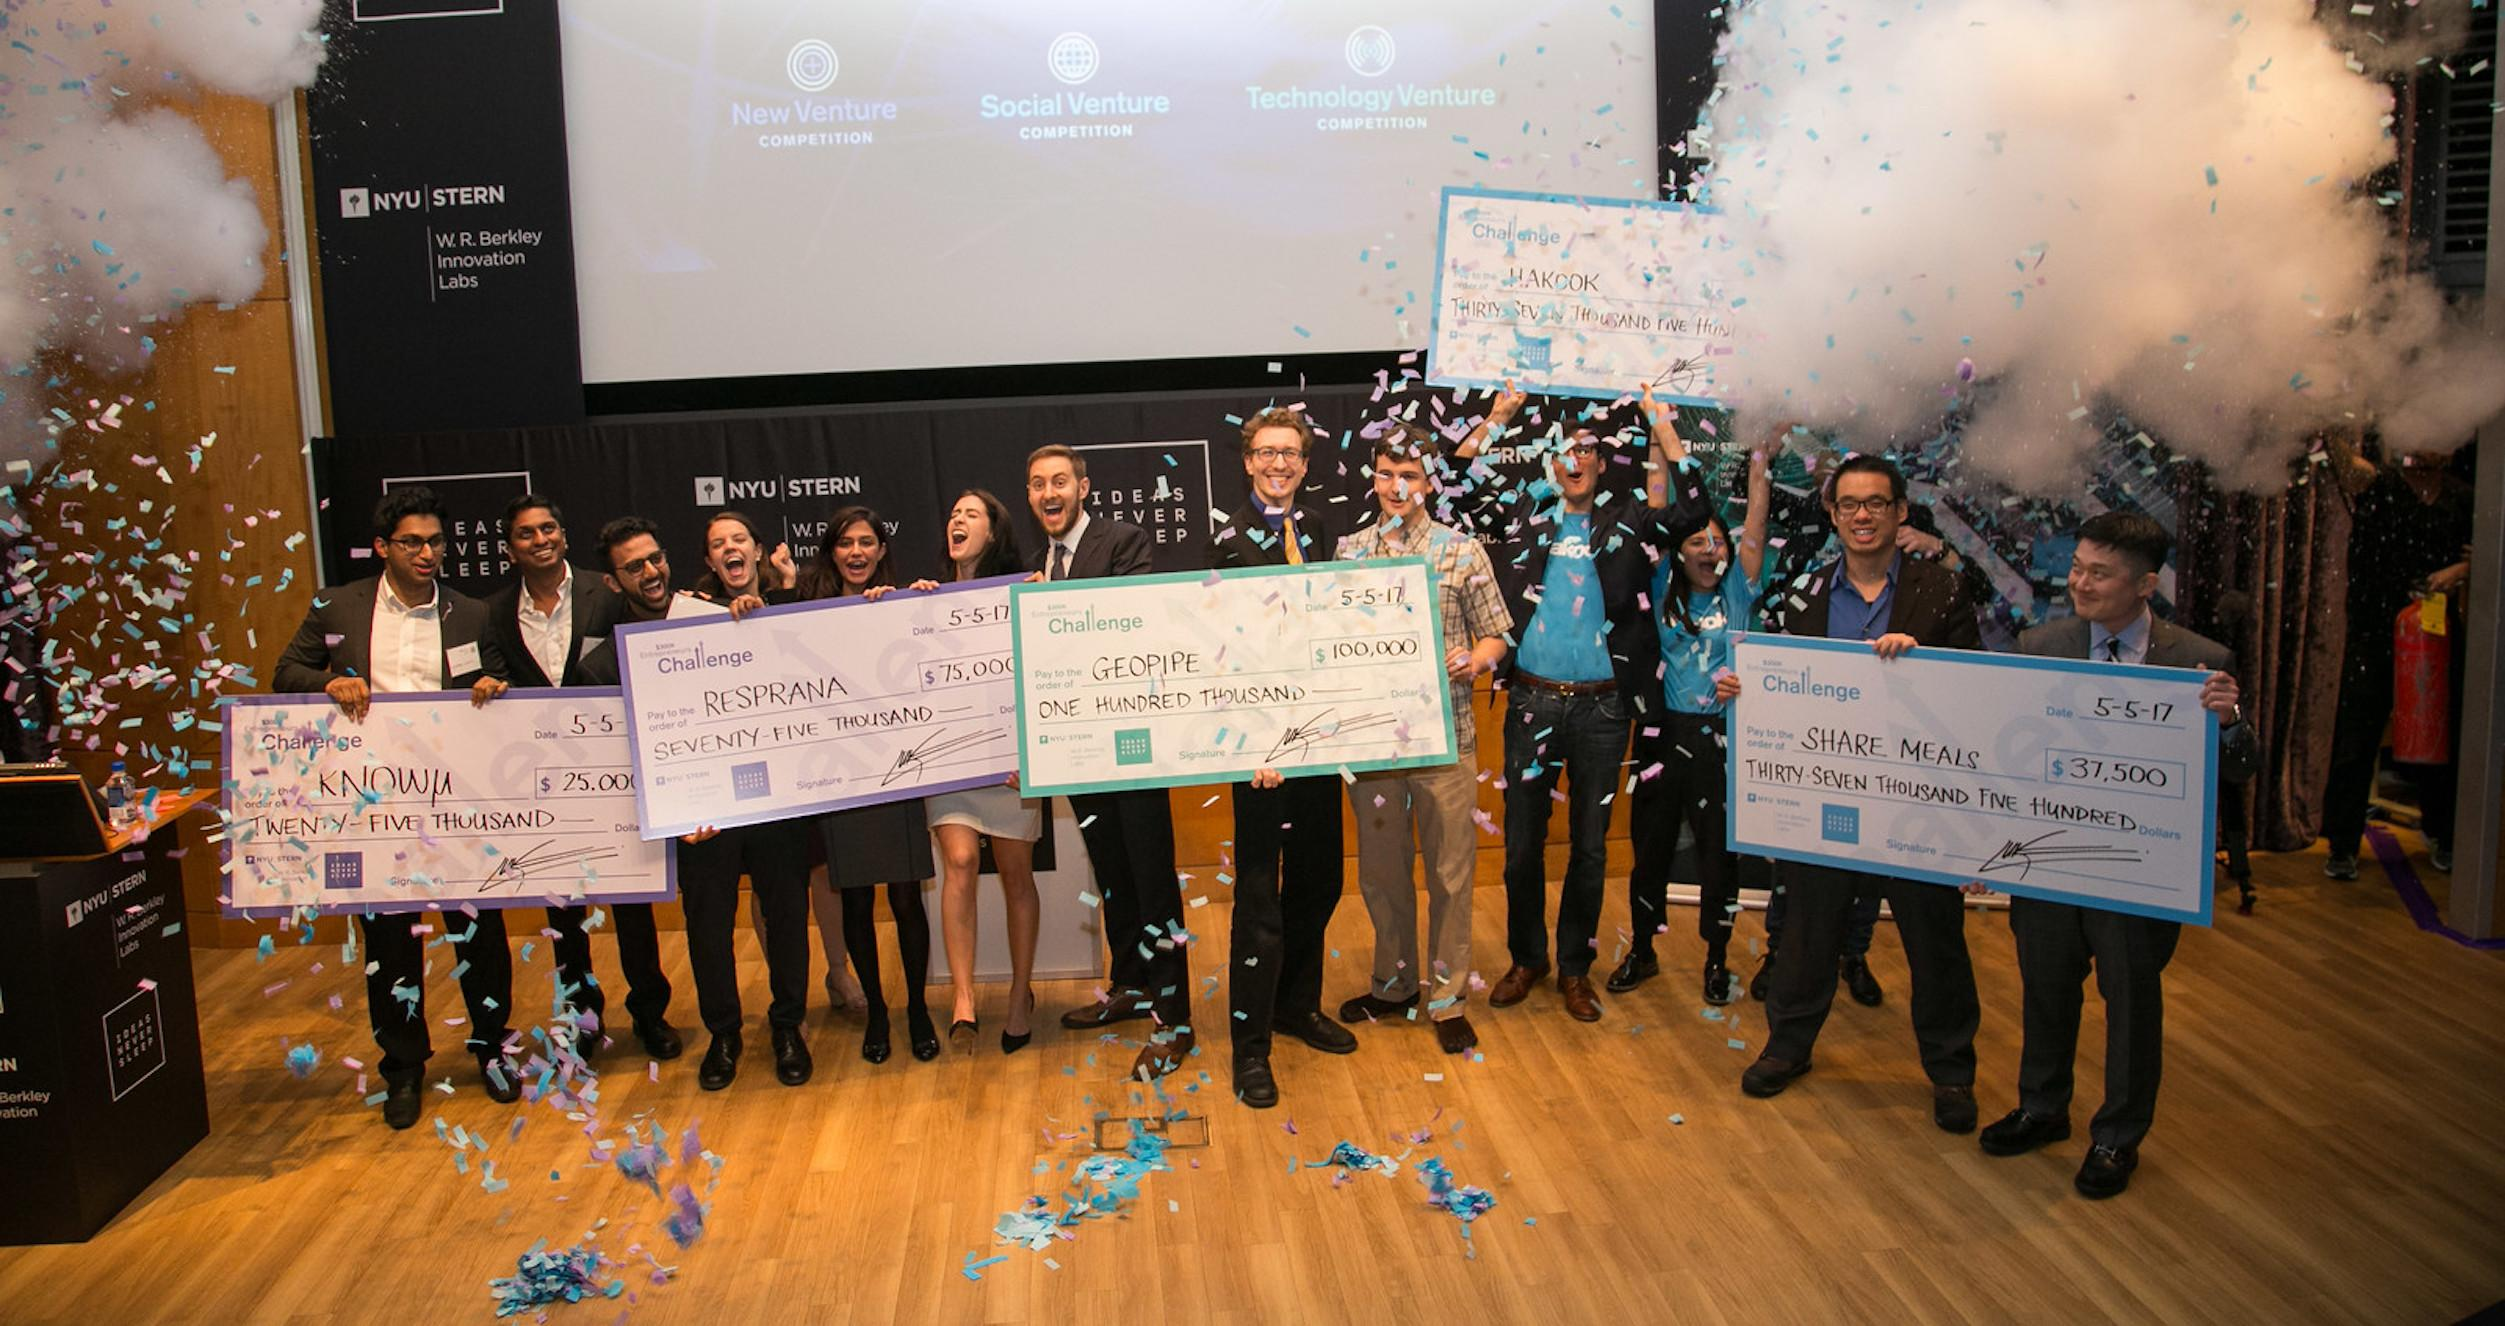 Winners of the $300K Entrepreneurs Challenge holding giant prize checks